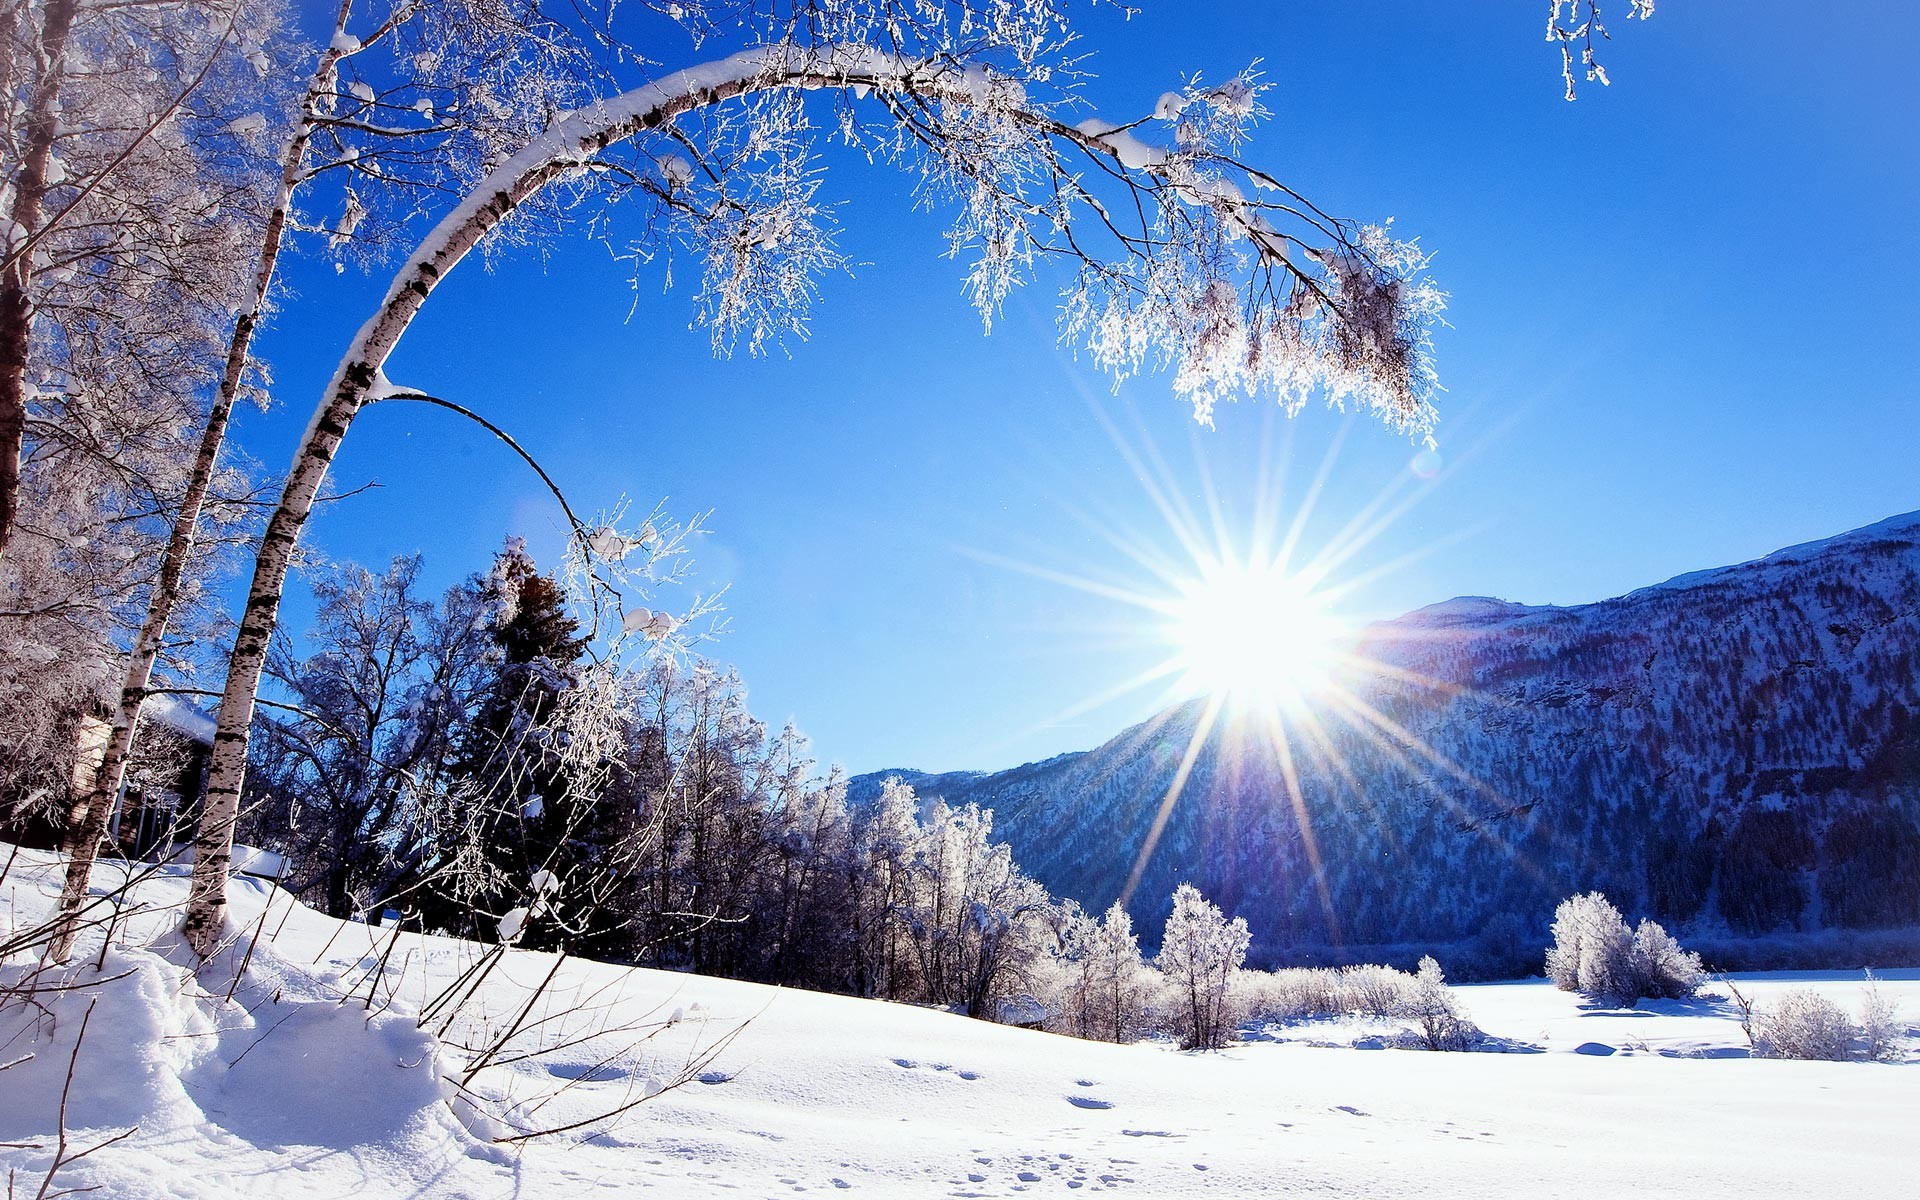 Anime Winter Scenery Wallpaper Stock Images